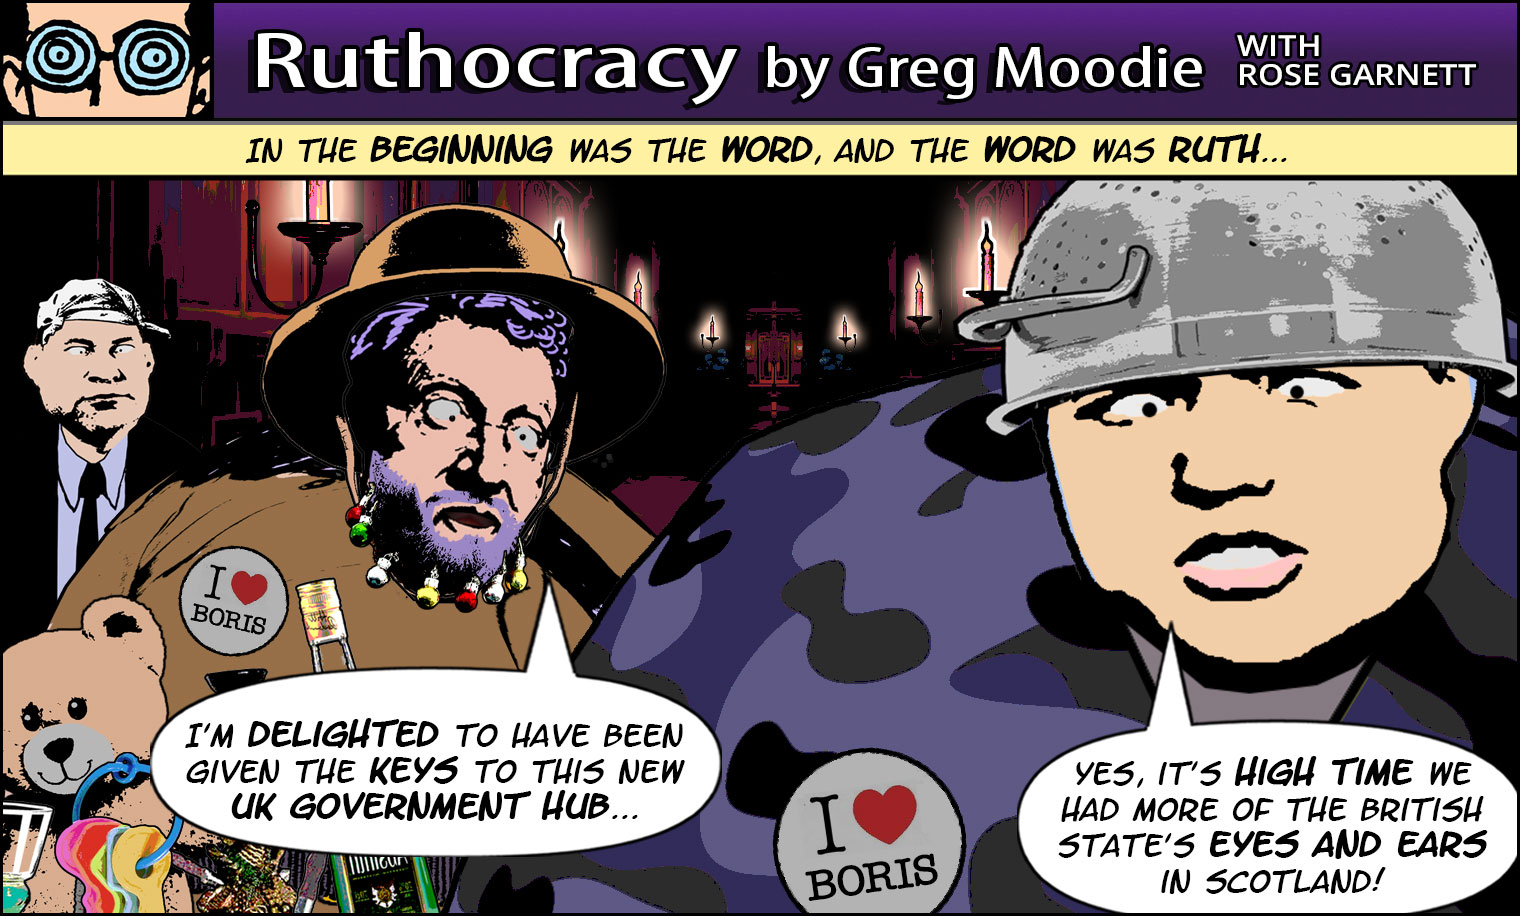 Ruthocracy